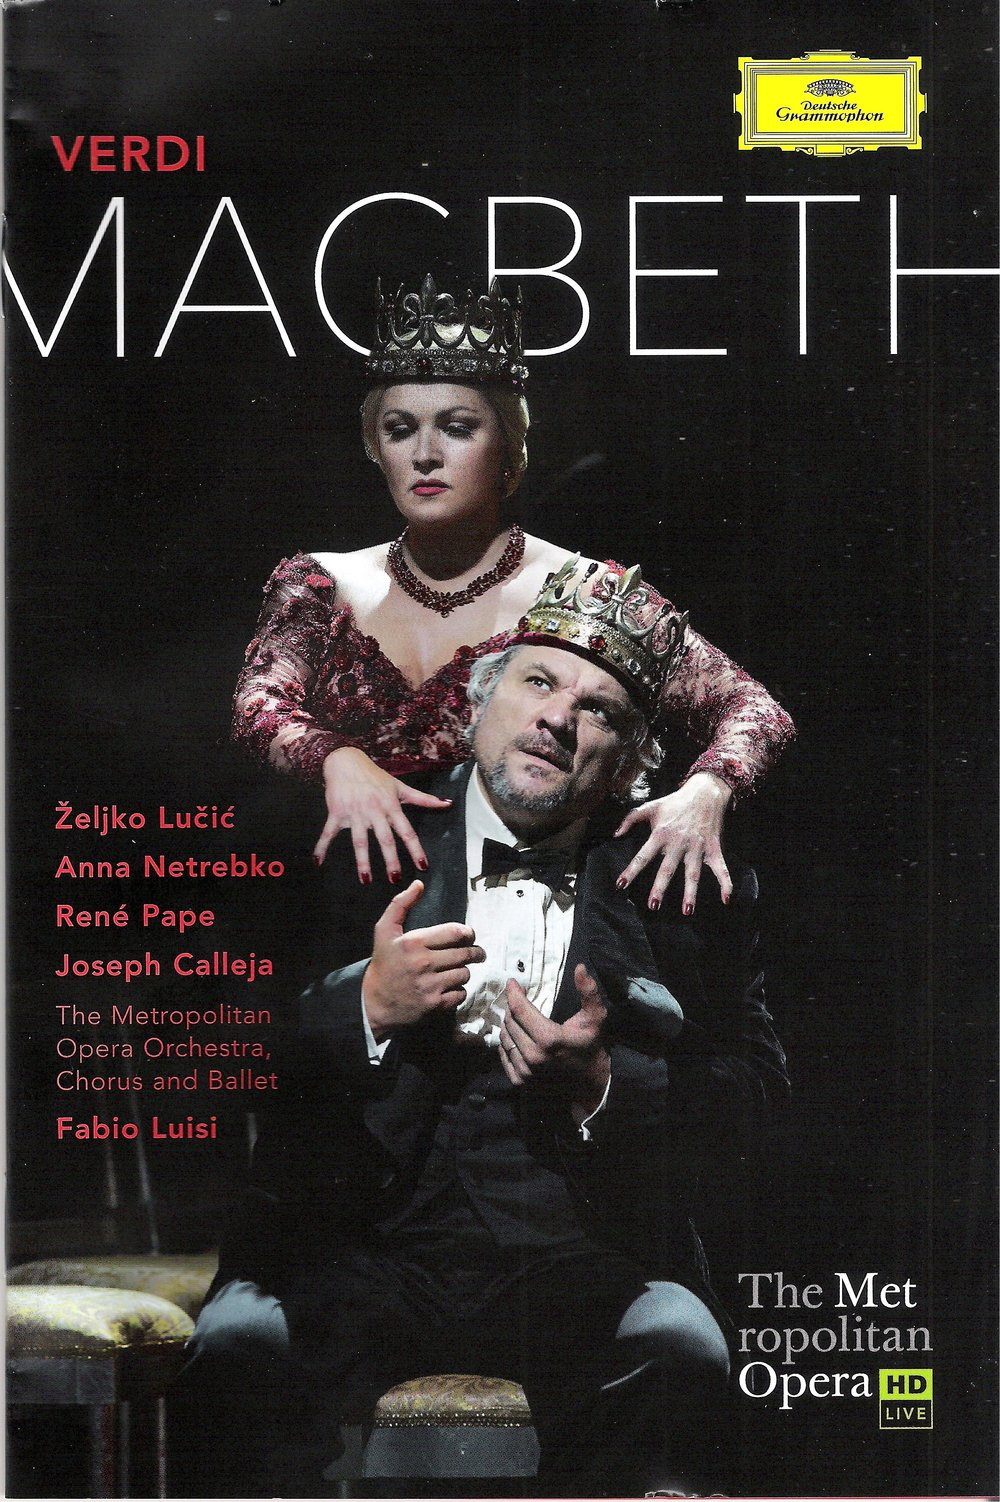 Anna Netrebko, Lady Macbeth as hot, not cold